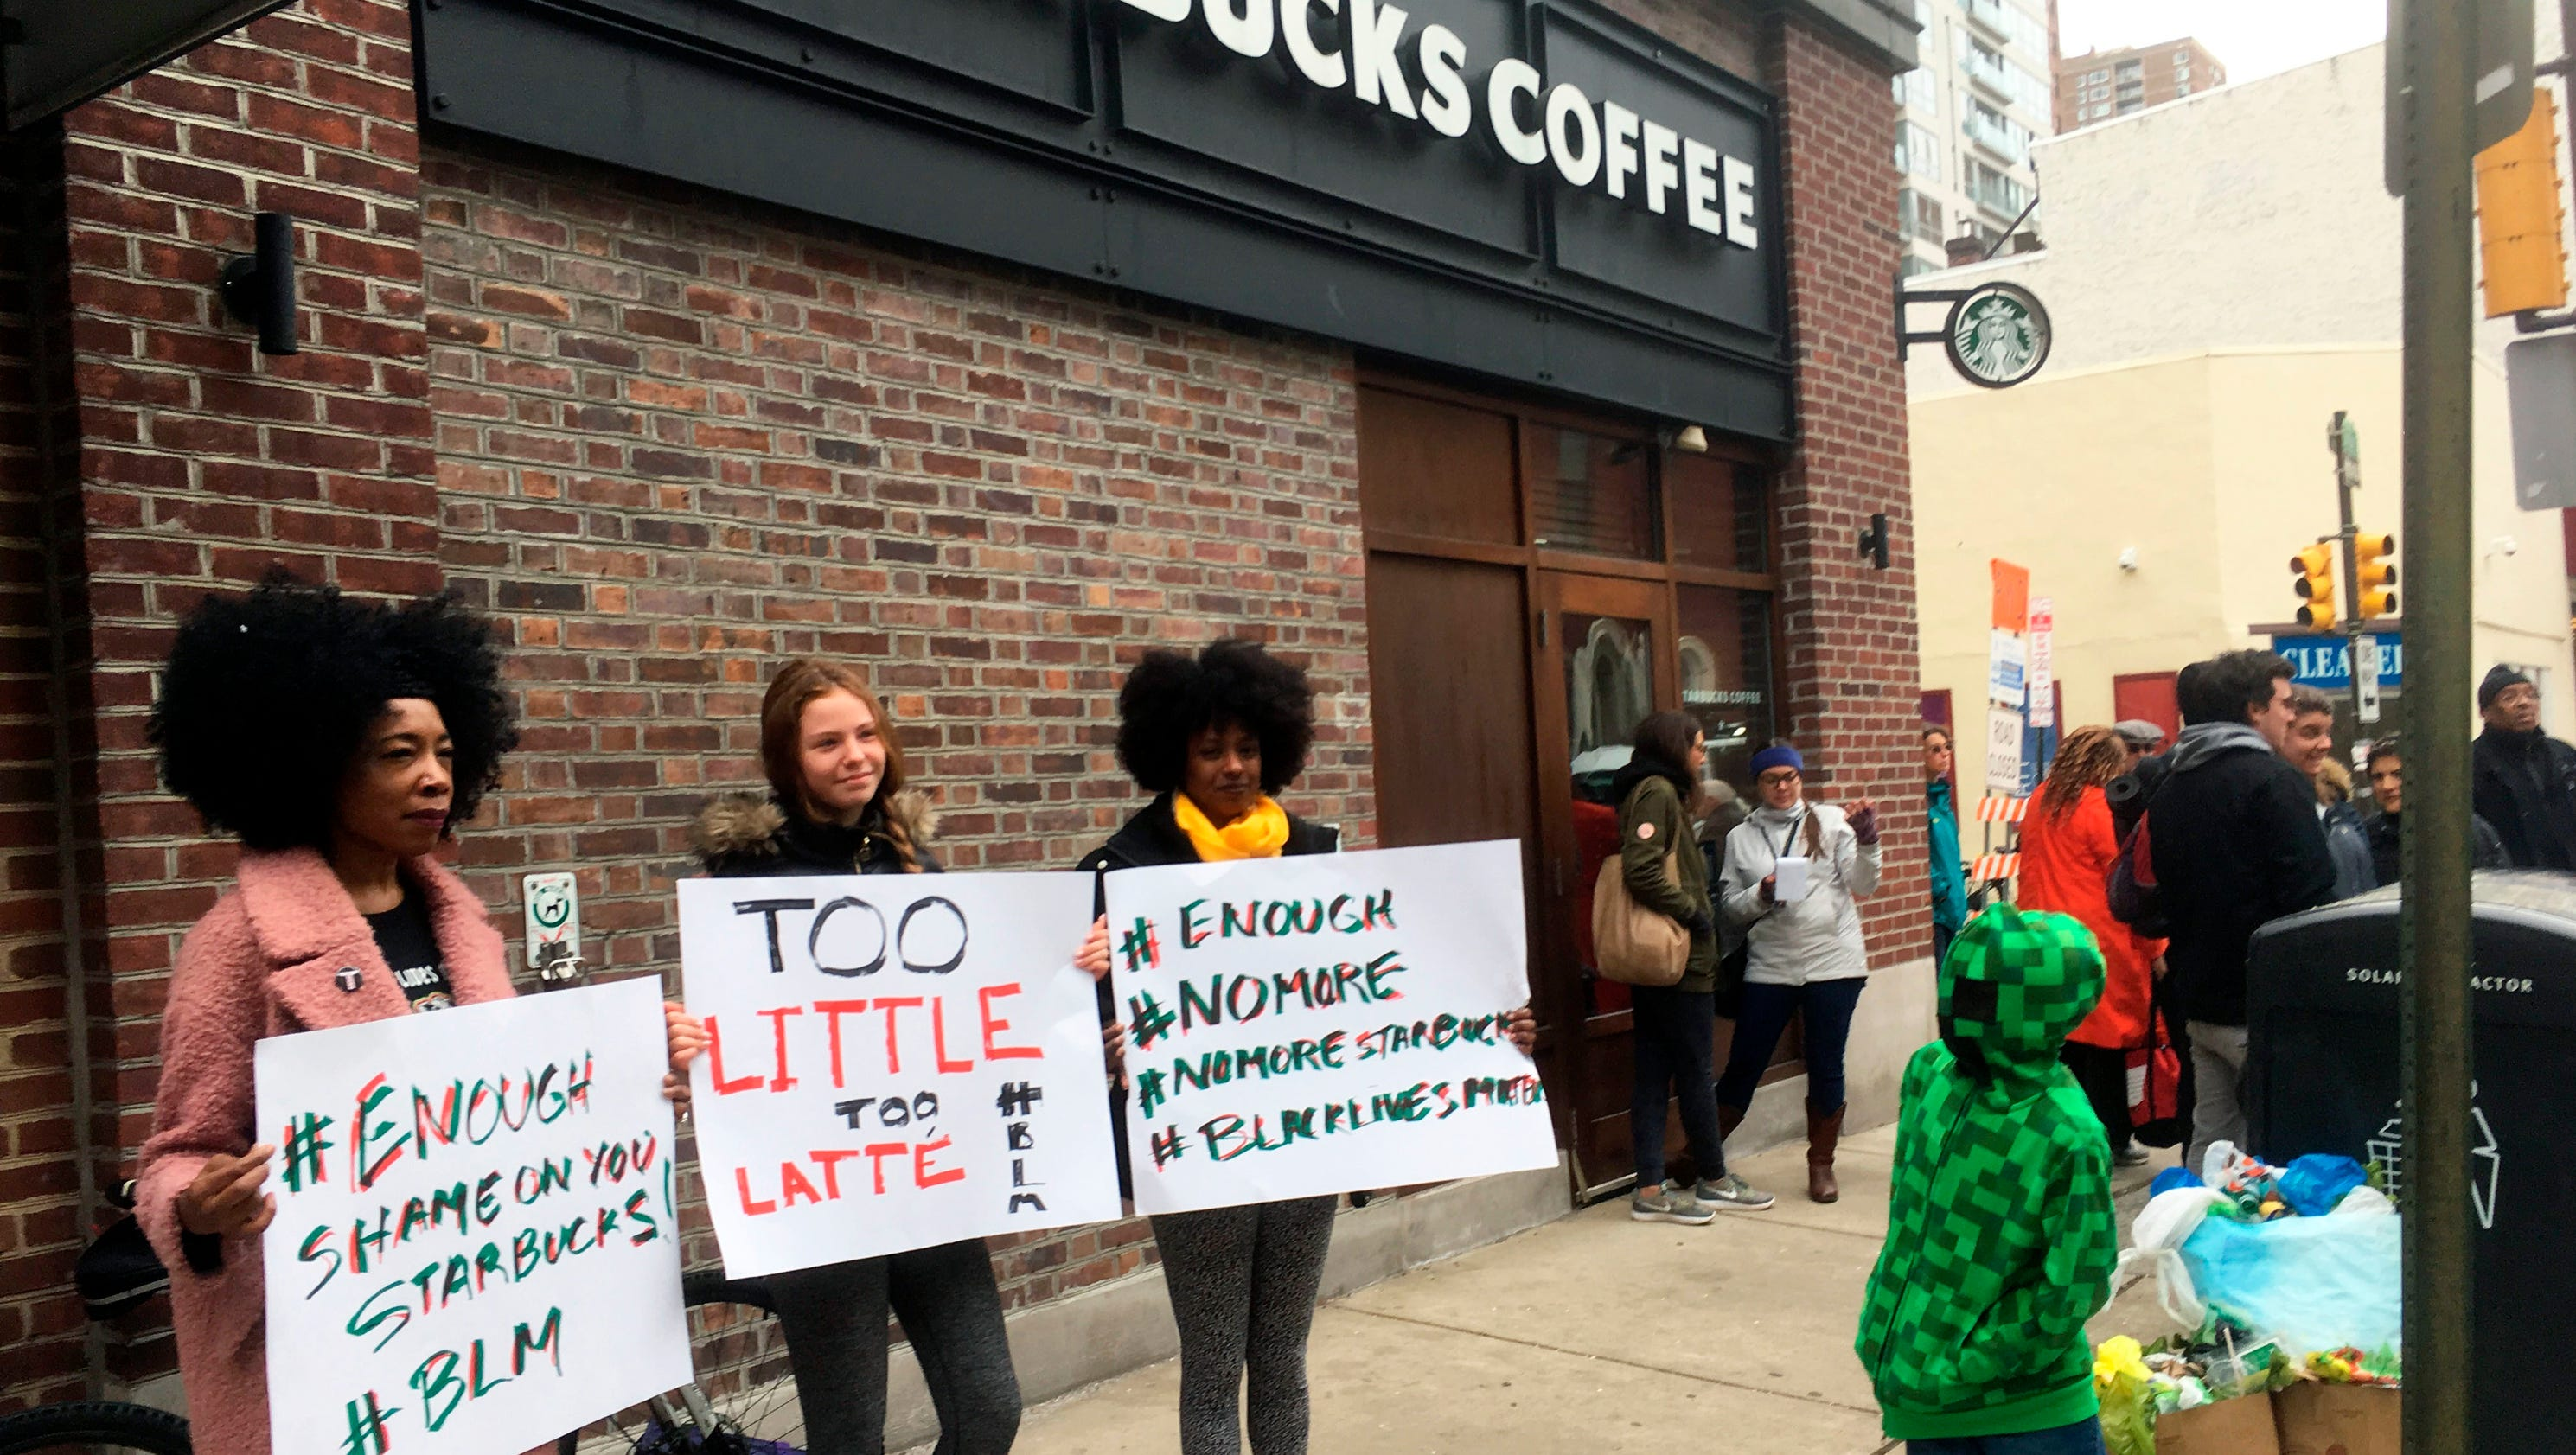 black single men in starbuck Starbucks issued an apology on twitter after starbucks employees called the police on two black men who were allegedly trespassing in a philadelphia store.